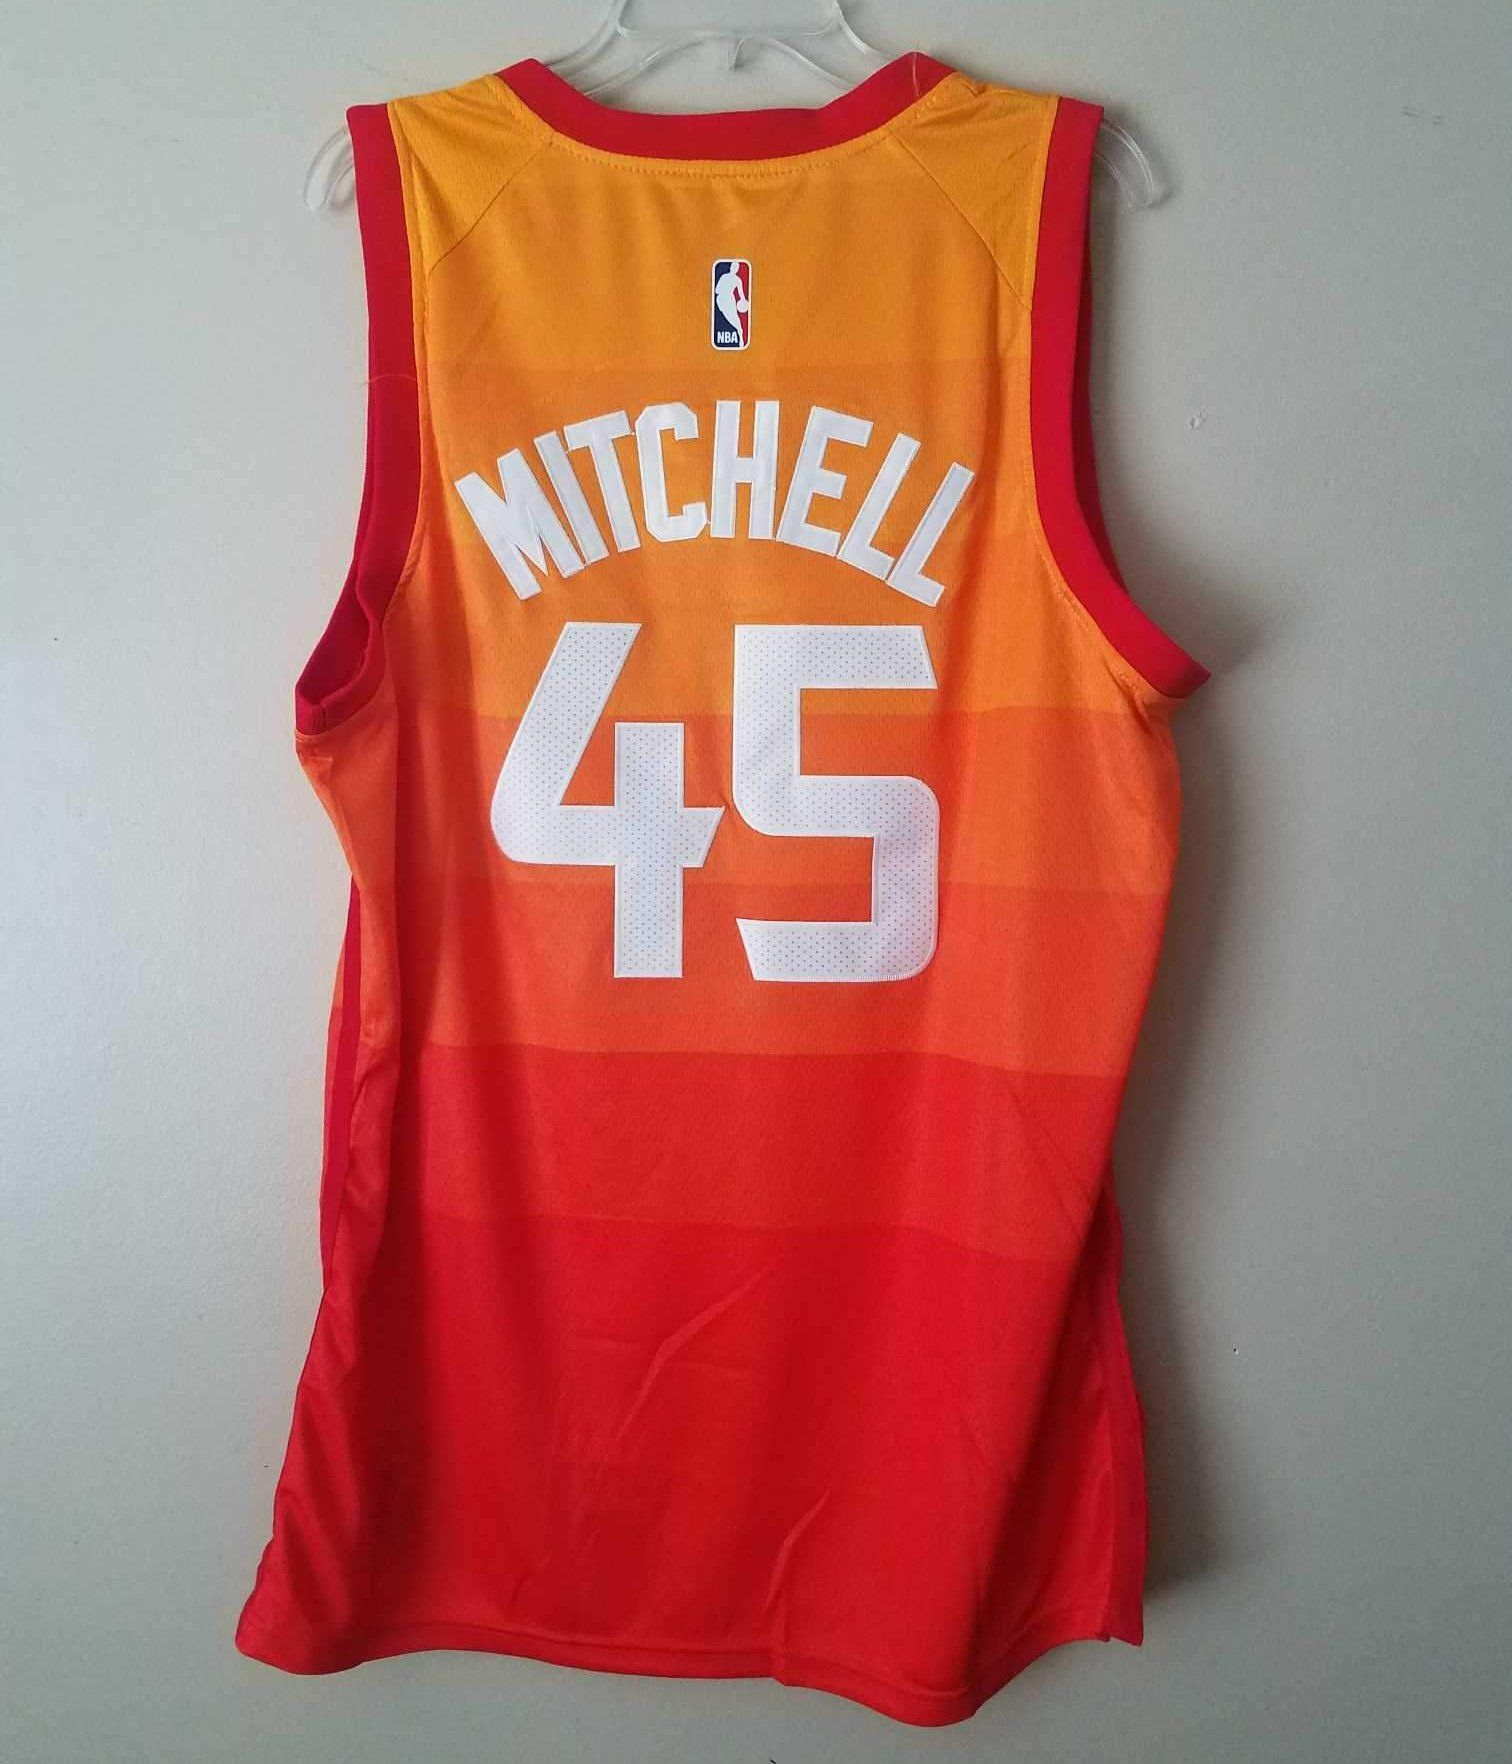 Men 45 Donovan Mitchell Jersey City edition Yellow Orange Utah Jazz  jersey   nRevo  NBAjersey  NBA  BasketballJersey  nRevoJersey 65447a49f